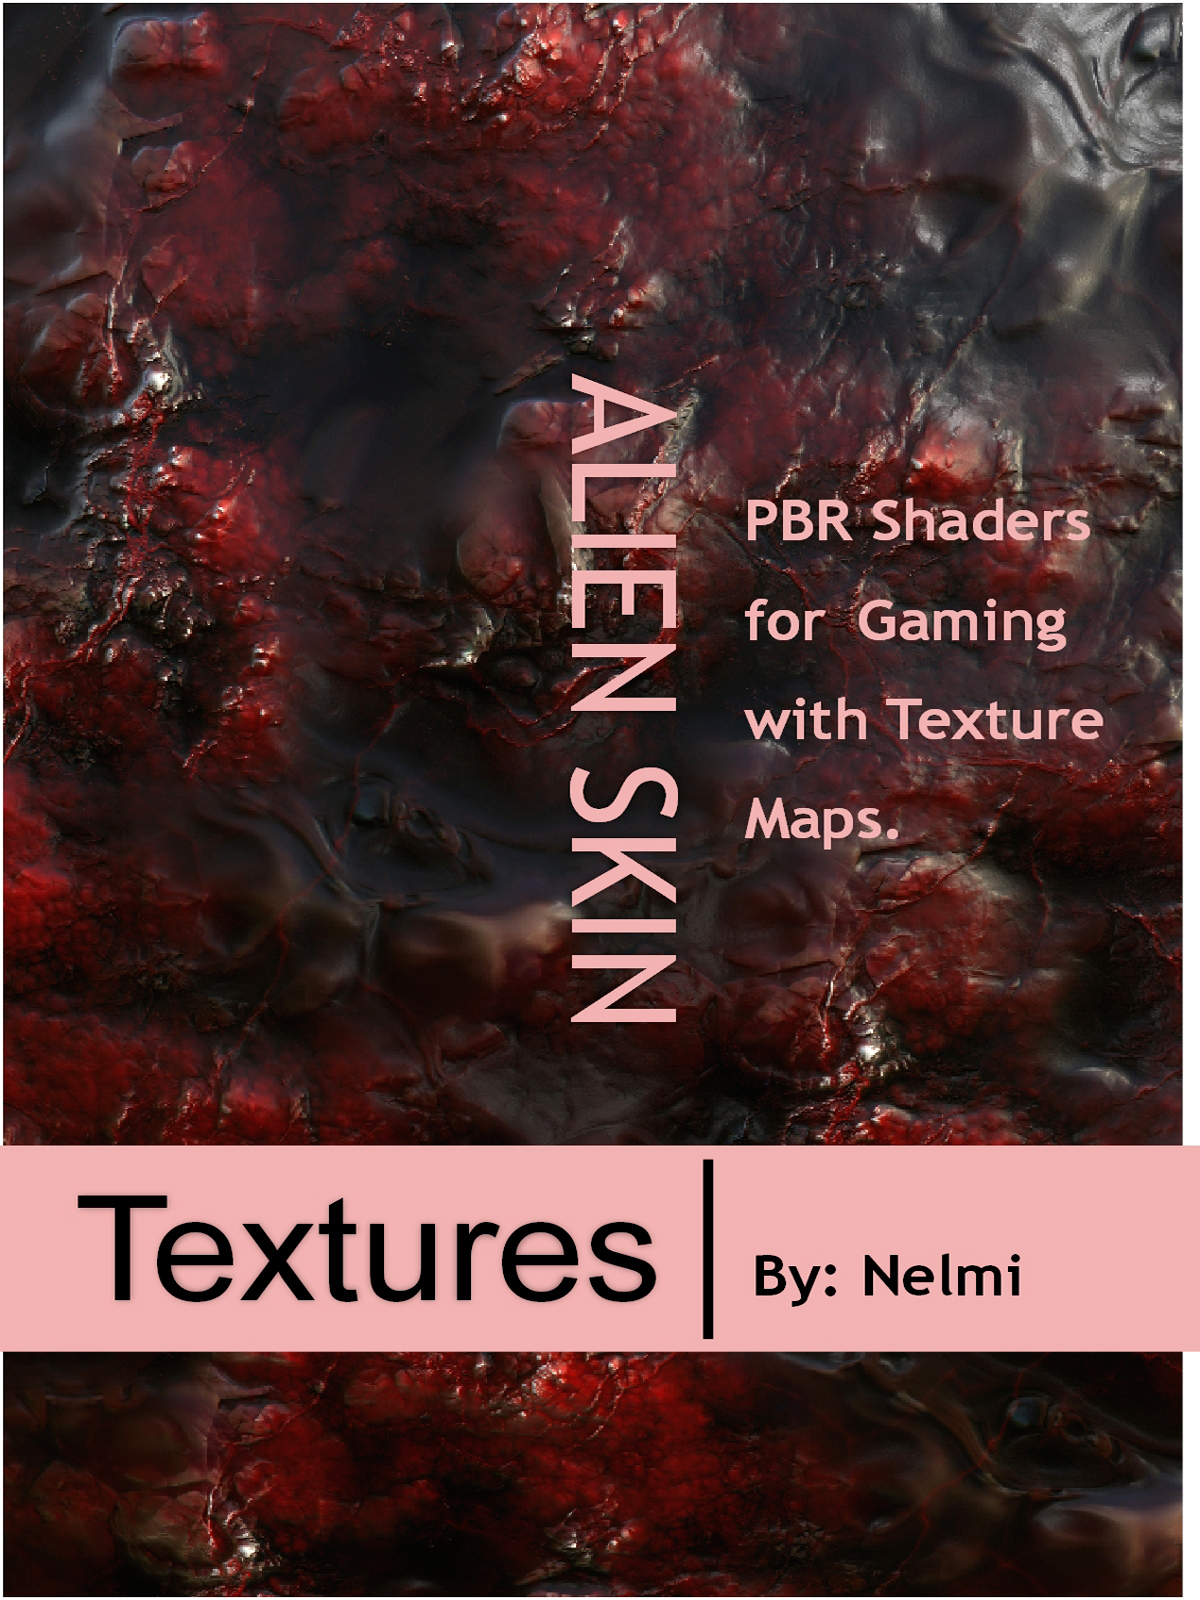 10 Seamless Alien Skin PBR Textures and Texture Maps - Gaming Assets